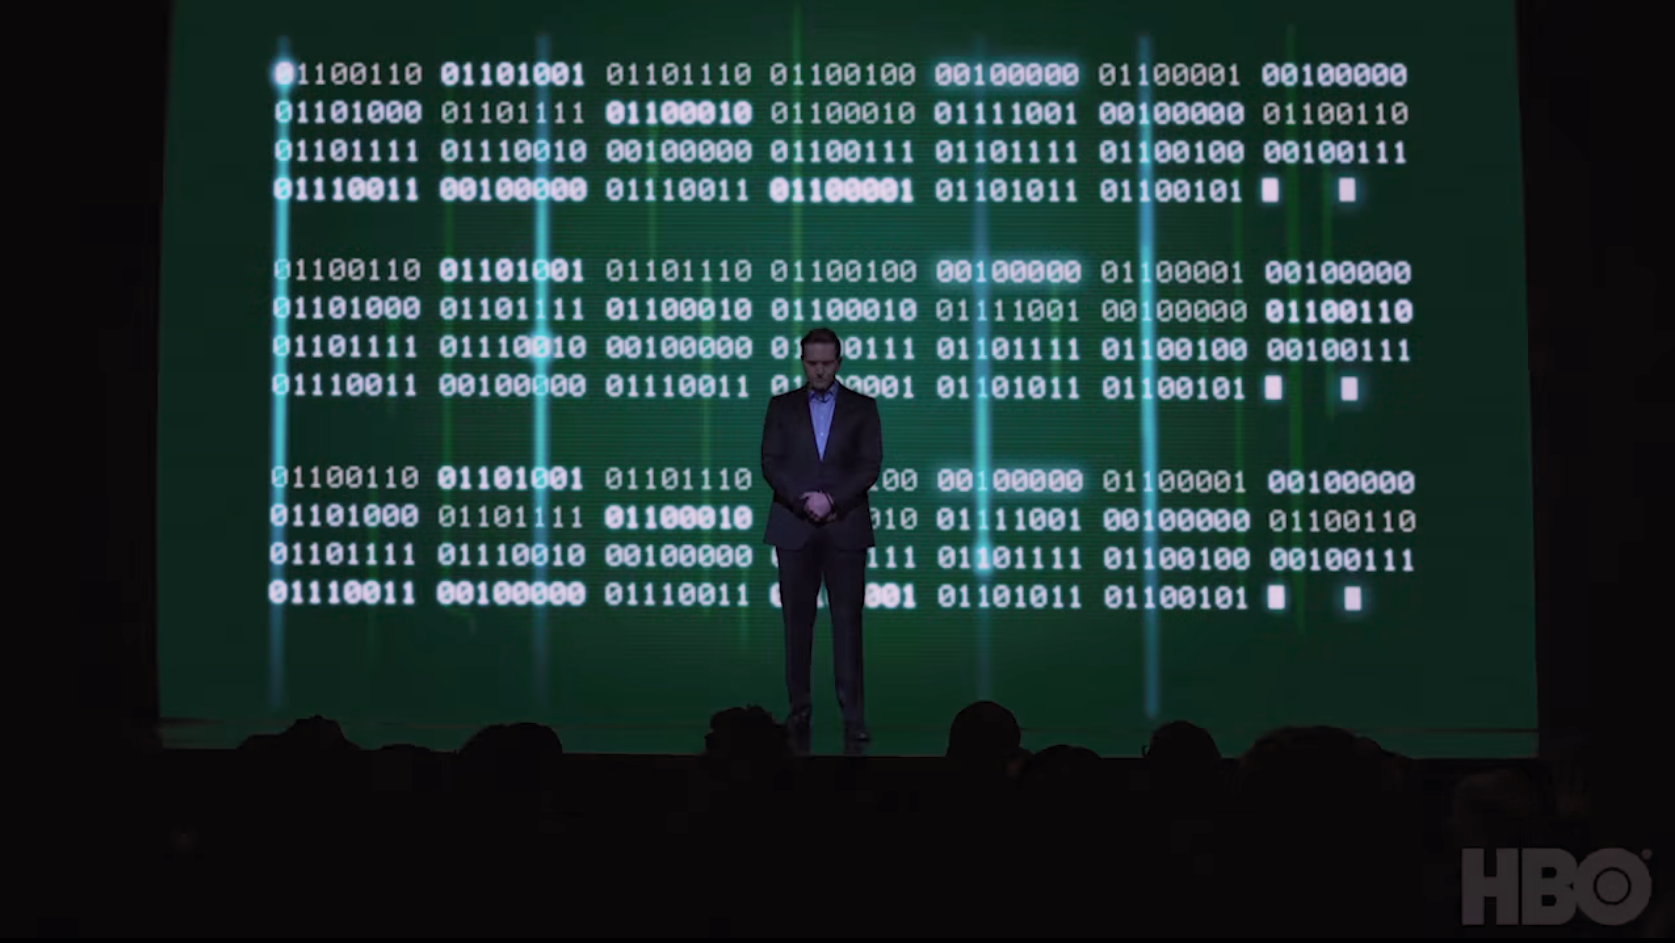 Silicon Valley's Season 5 Trailer Has A Hidden Message For All You Nerds Out There